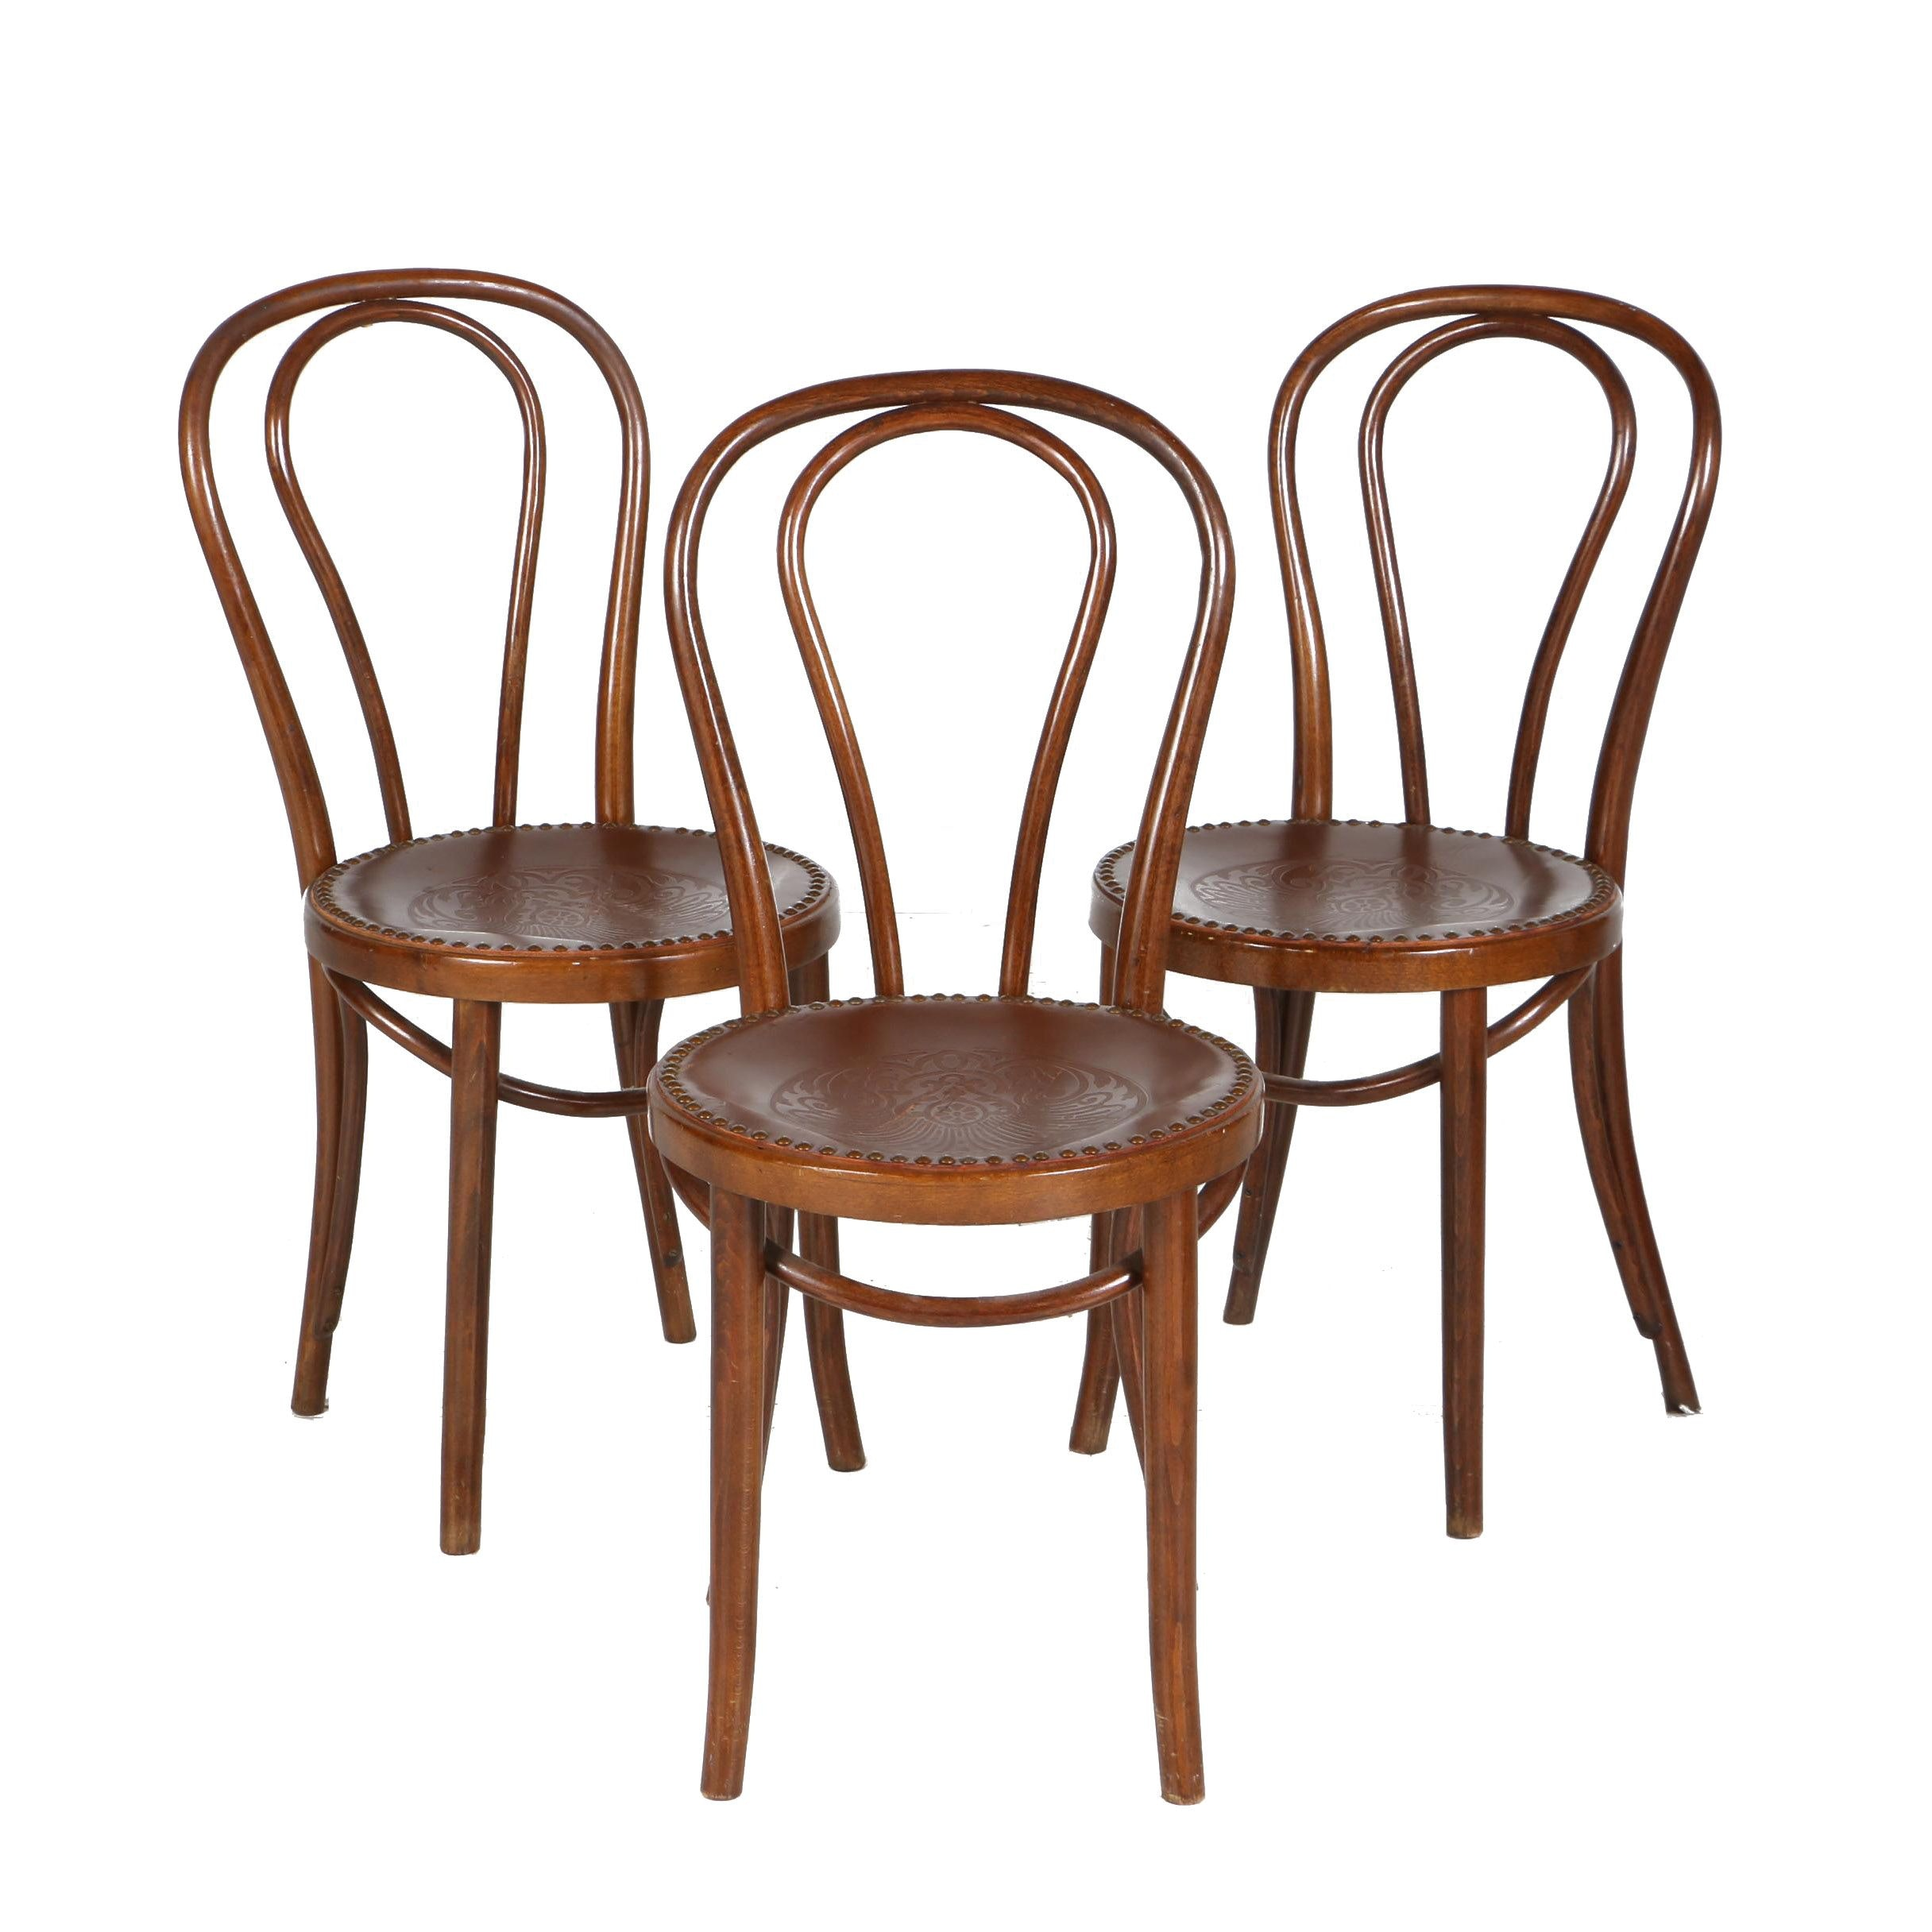 Three Bent-Beechwood Cafe Side Chairs in the Style of Thonet, Early 20th Century